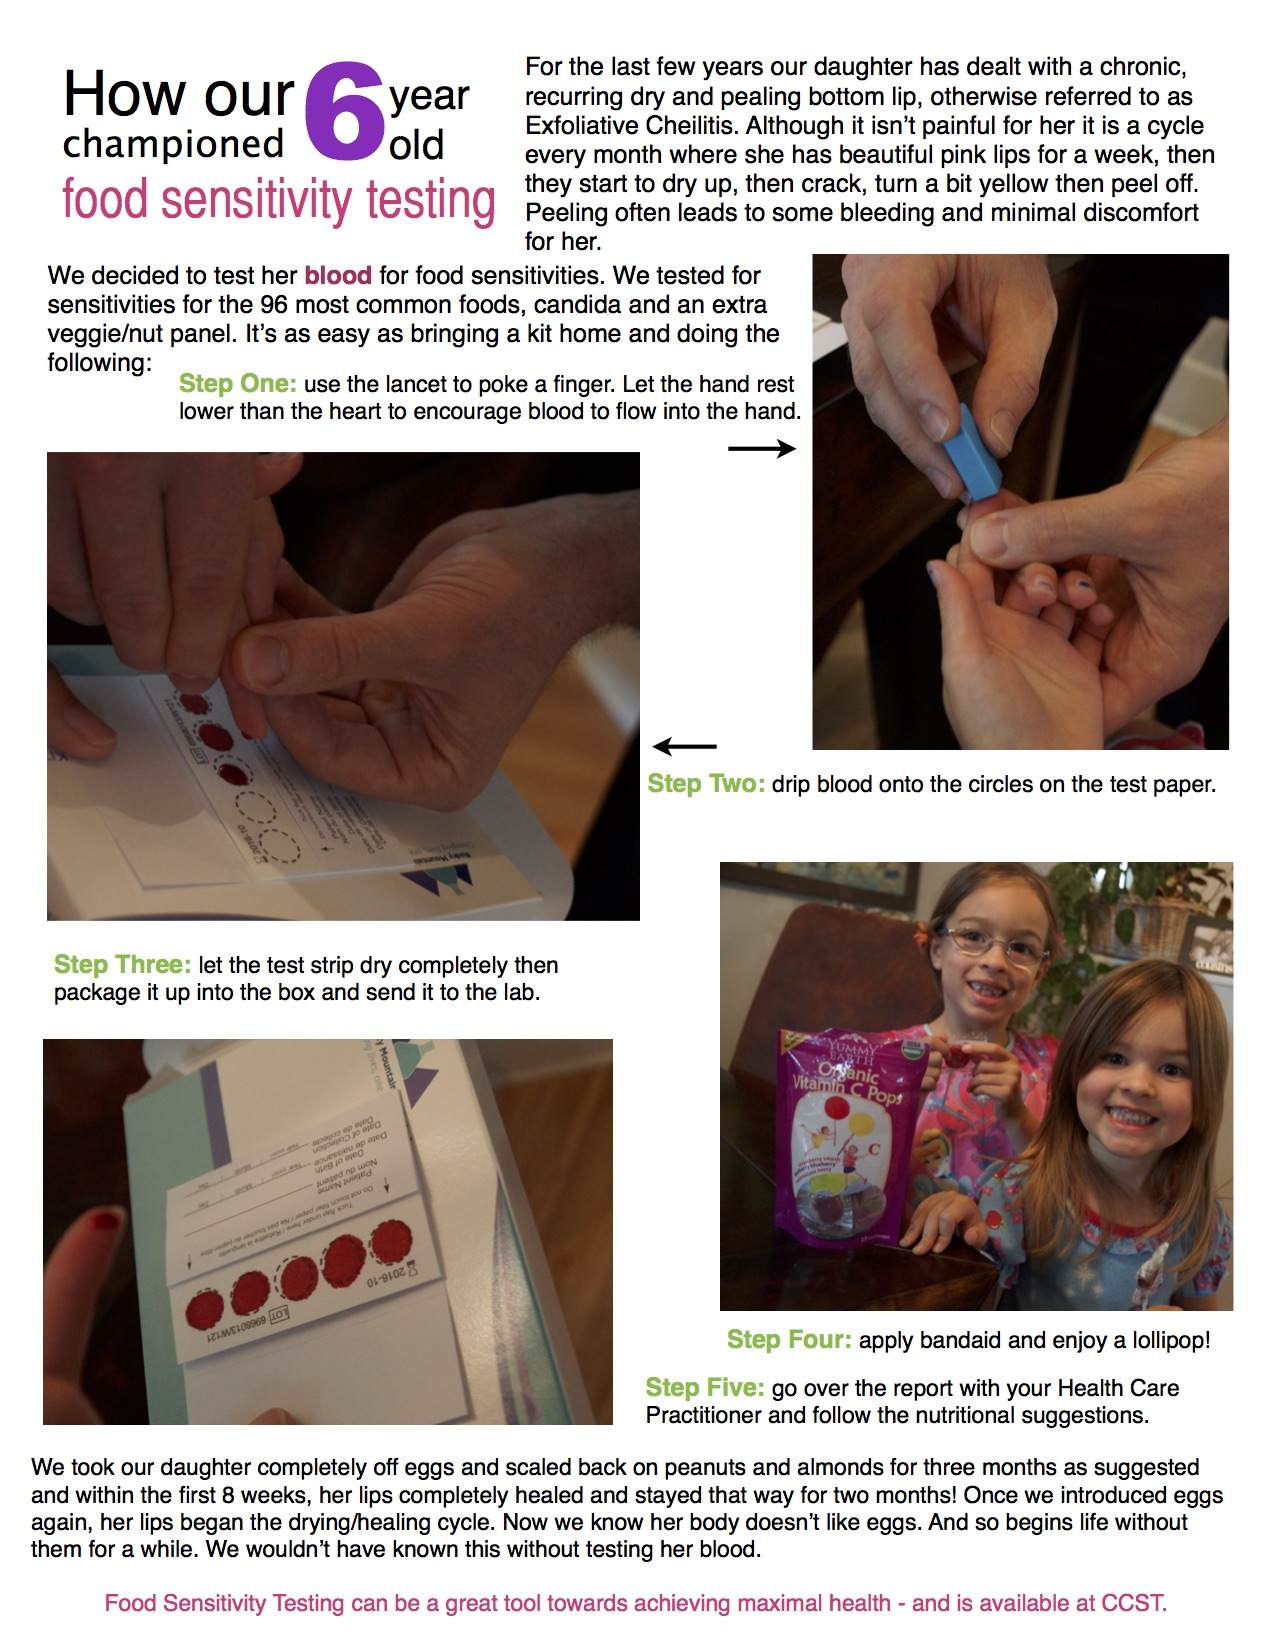 How our 6 year old championed food sensitivity testing